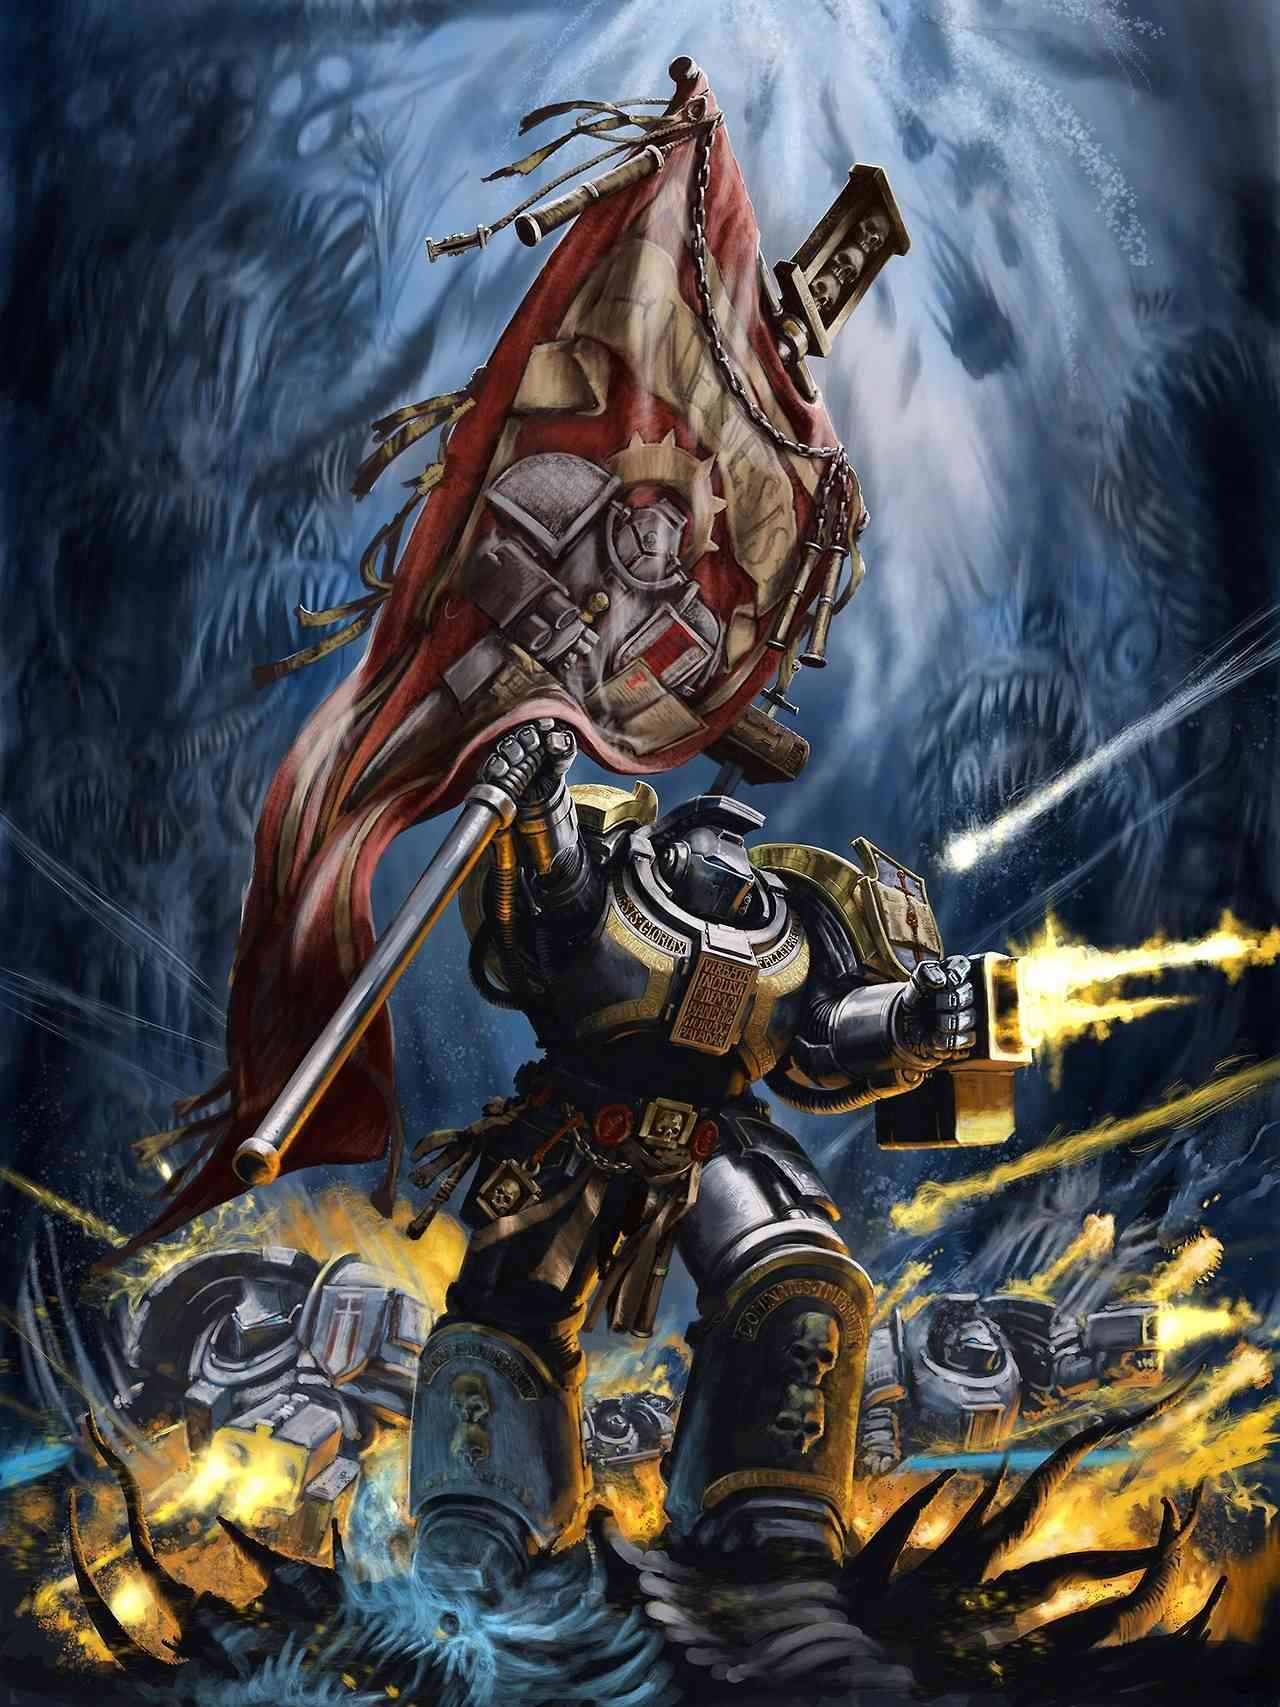 [W40K] Collection d'images : Inquisition/Chevaliers Gris/Sœurs de Bataille - Page 15 Tumblr10